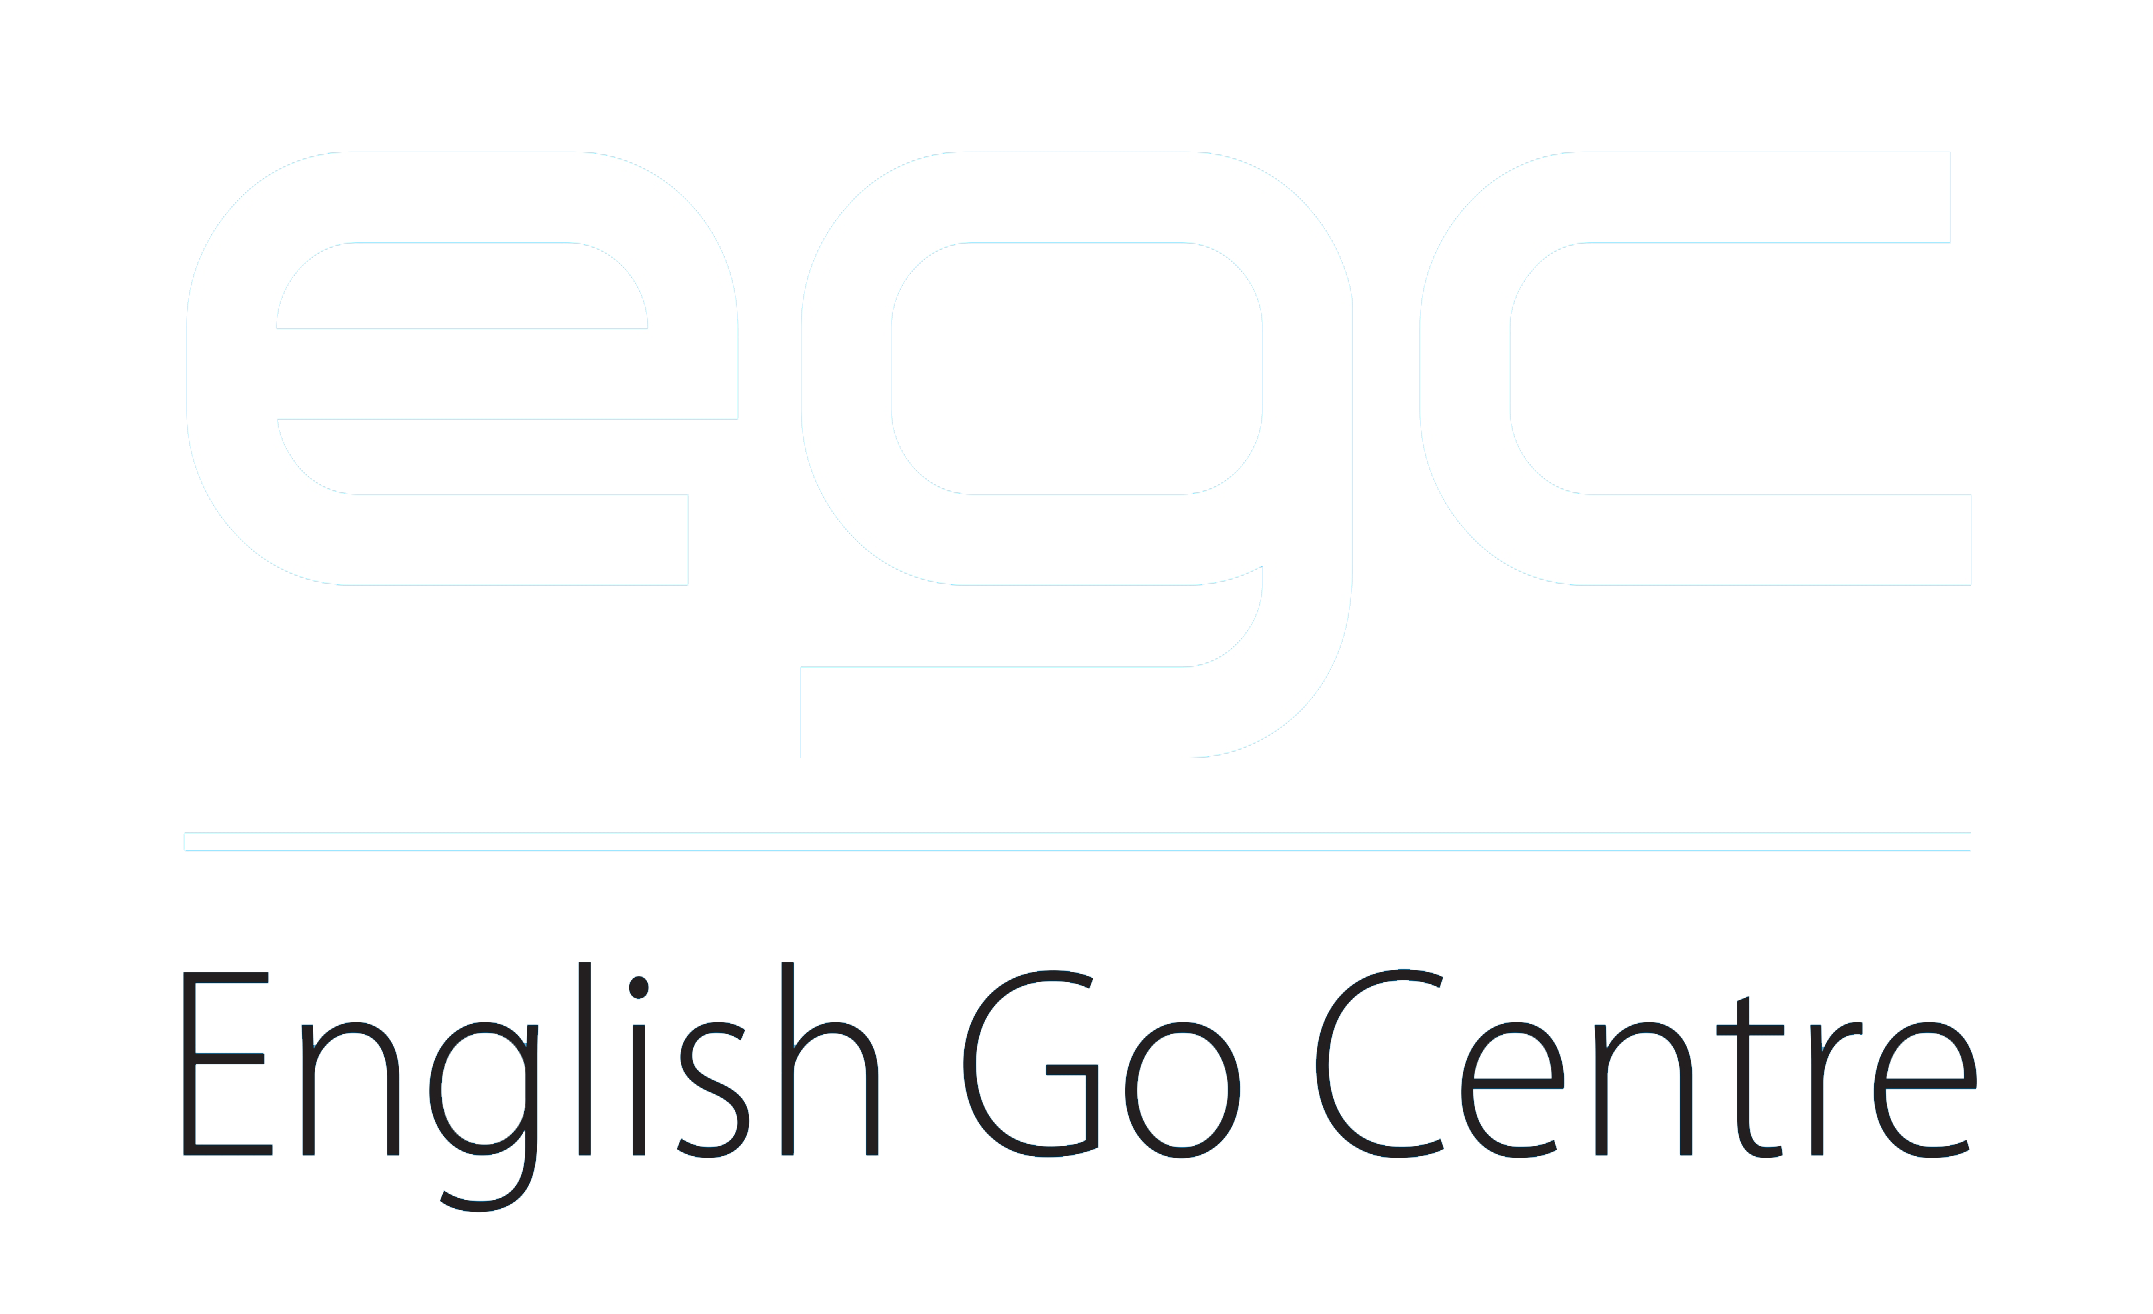 ES - English Go Centre